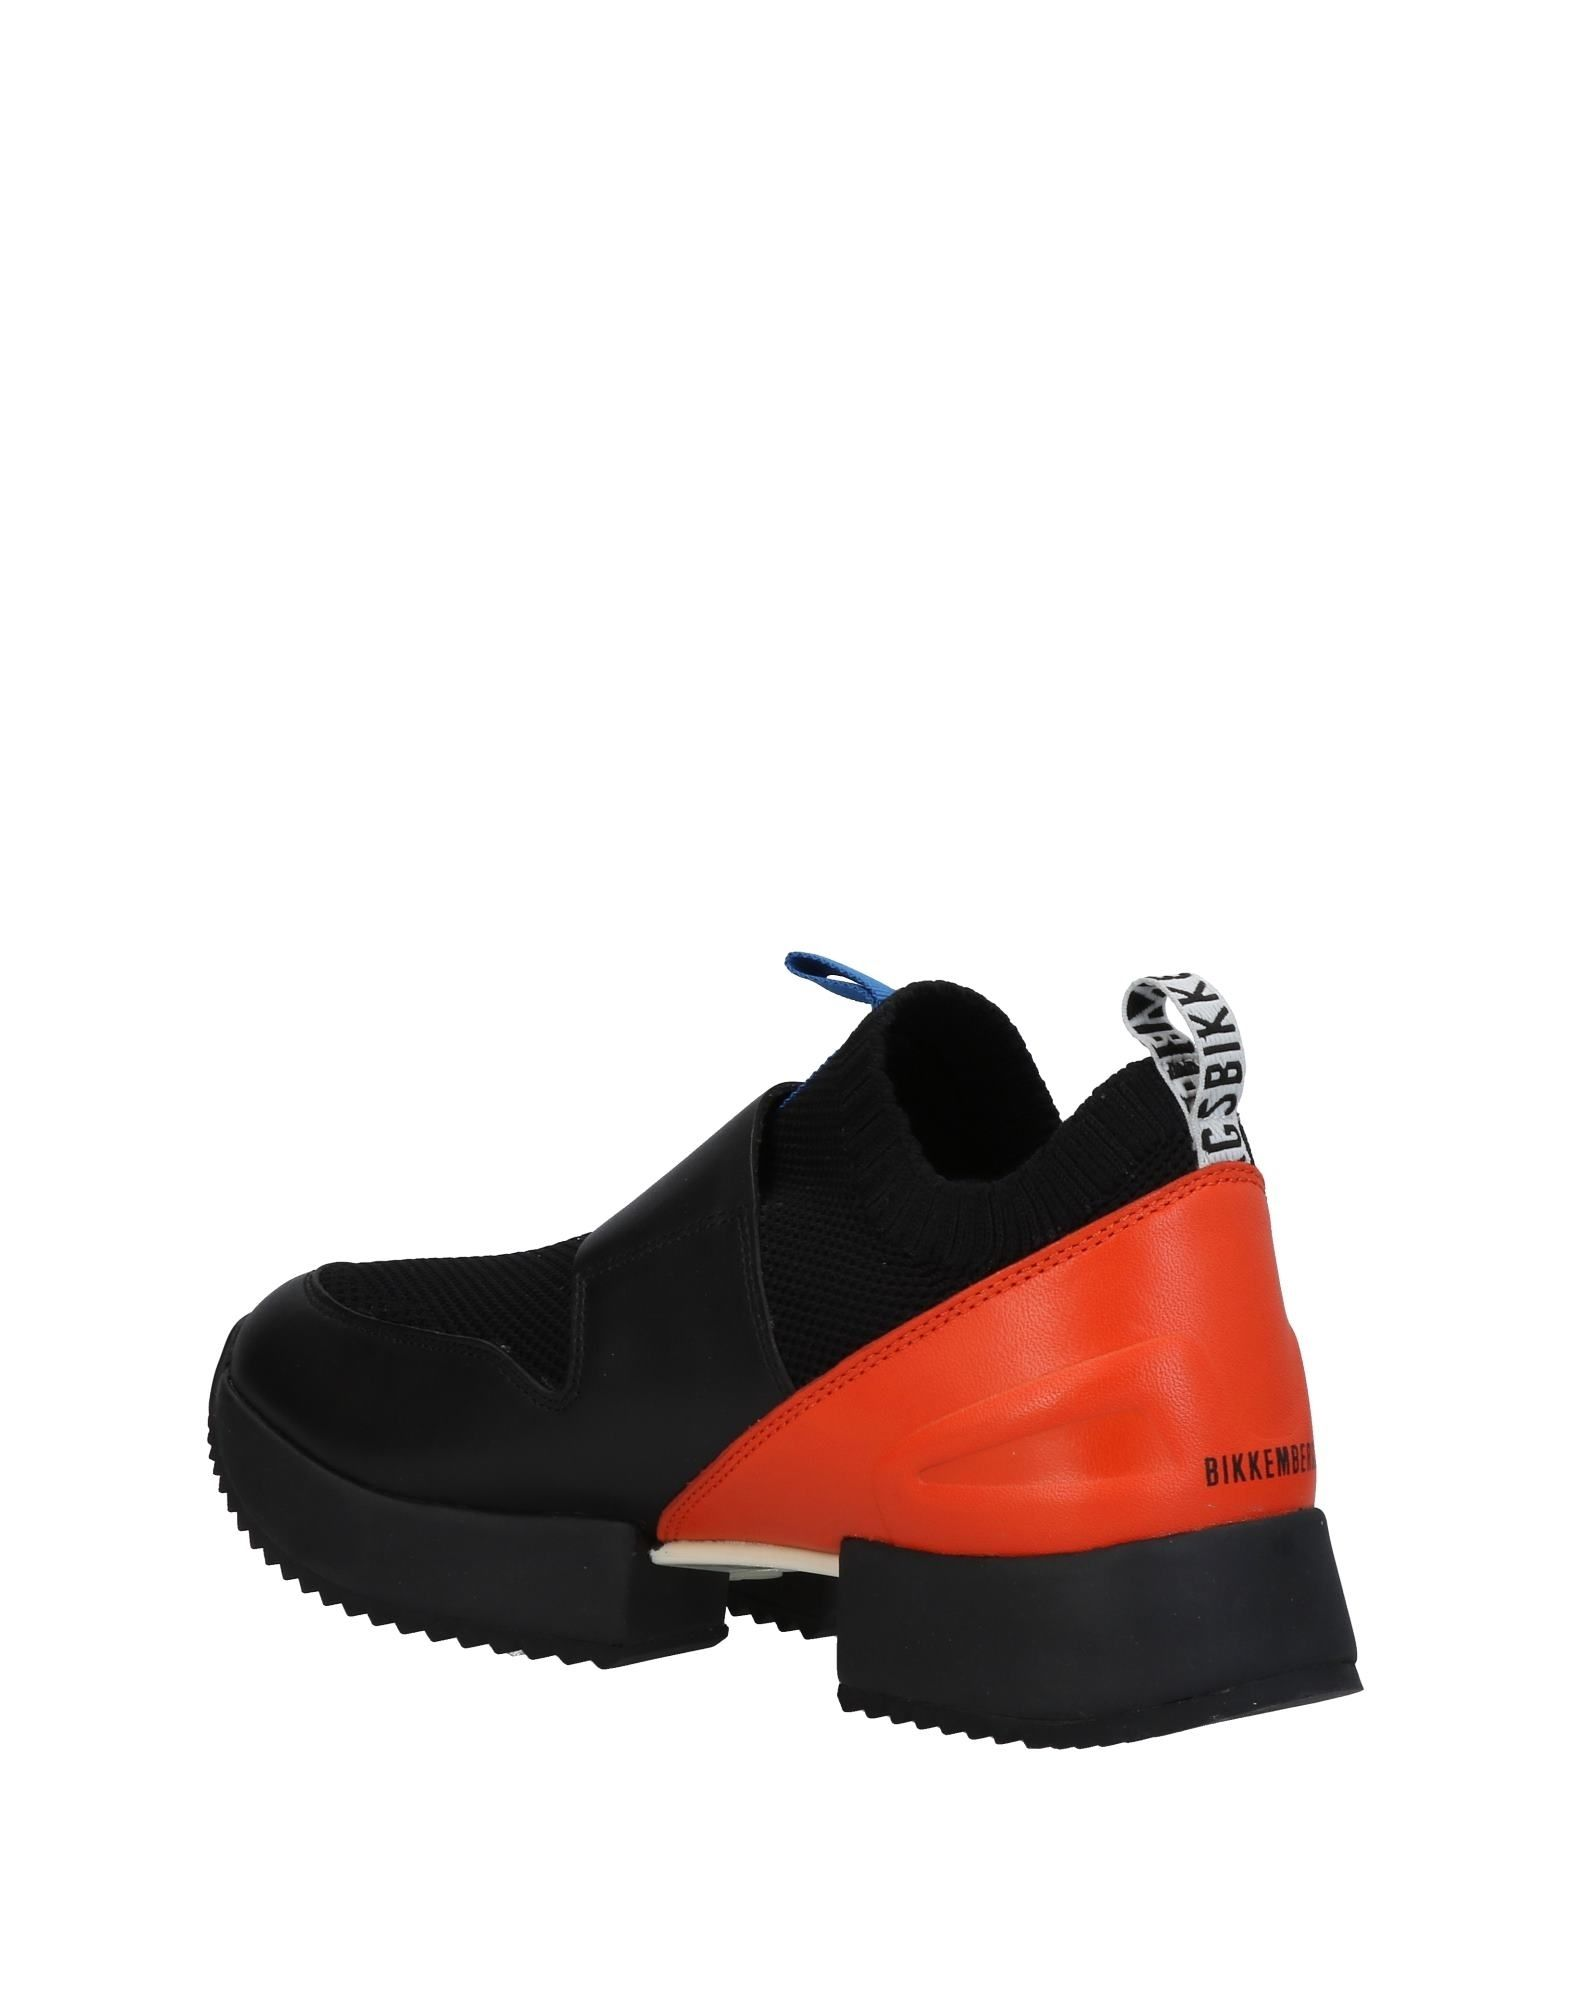 11450614XP Bikkembergs Sneakers Damen  11450614XP  fa4a90